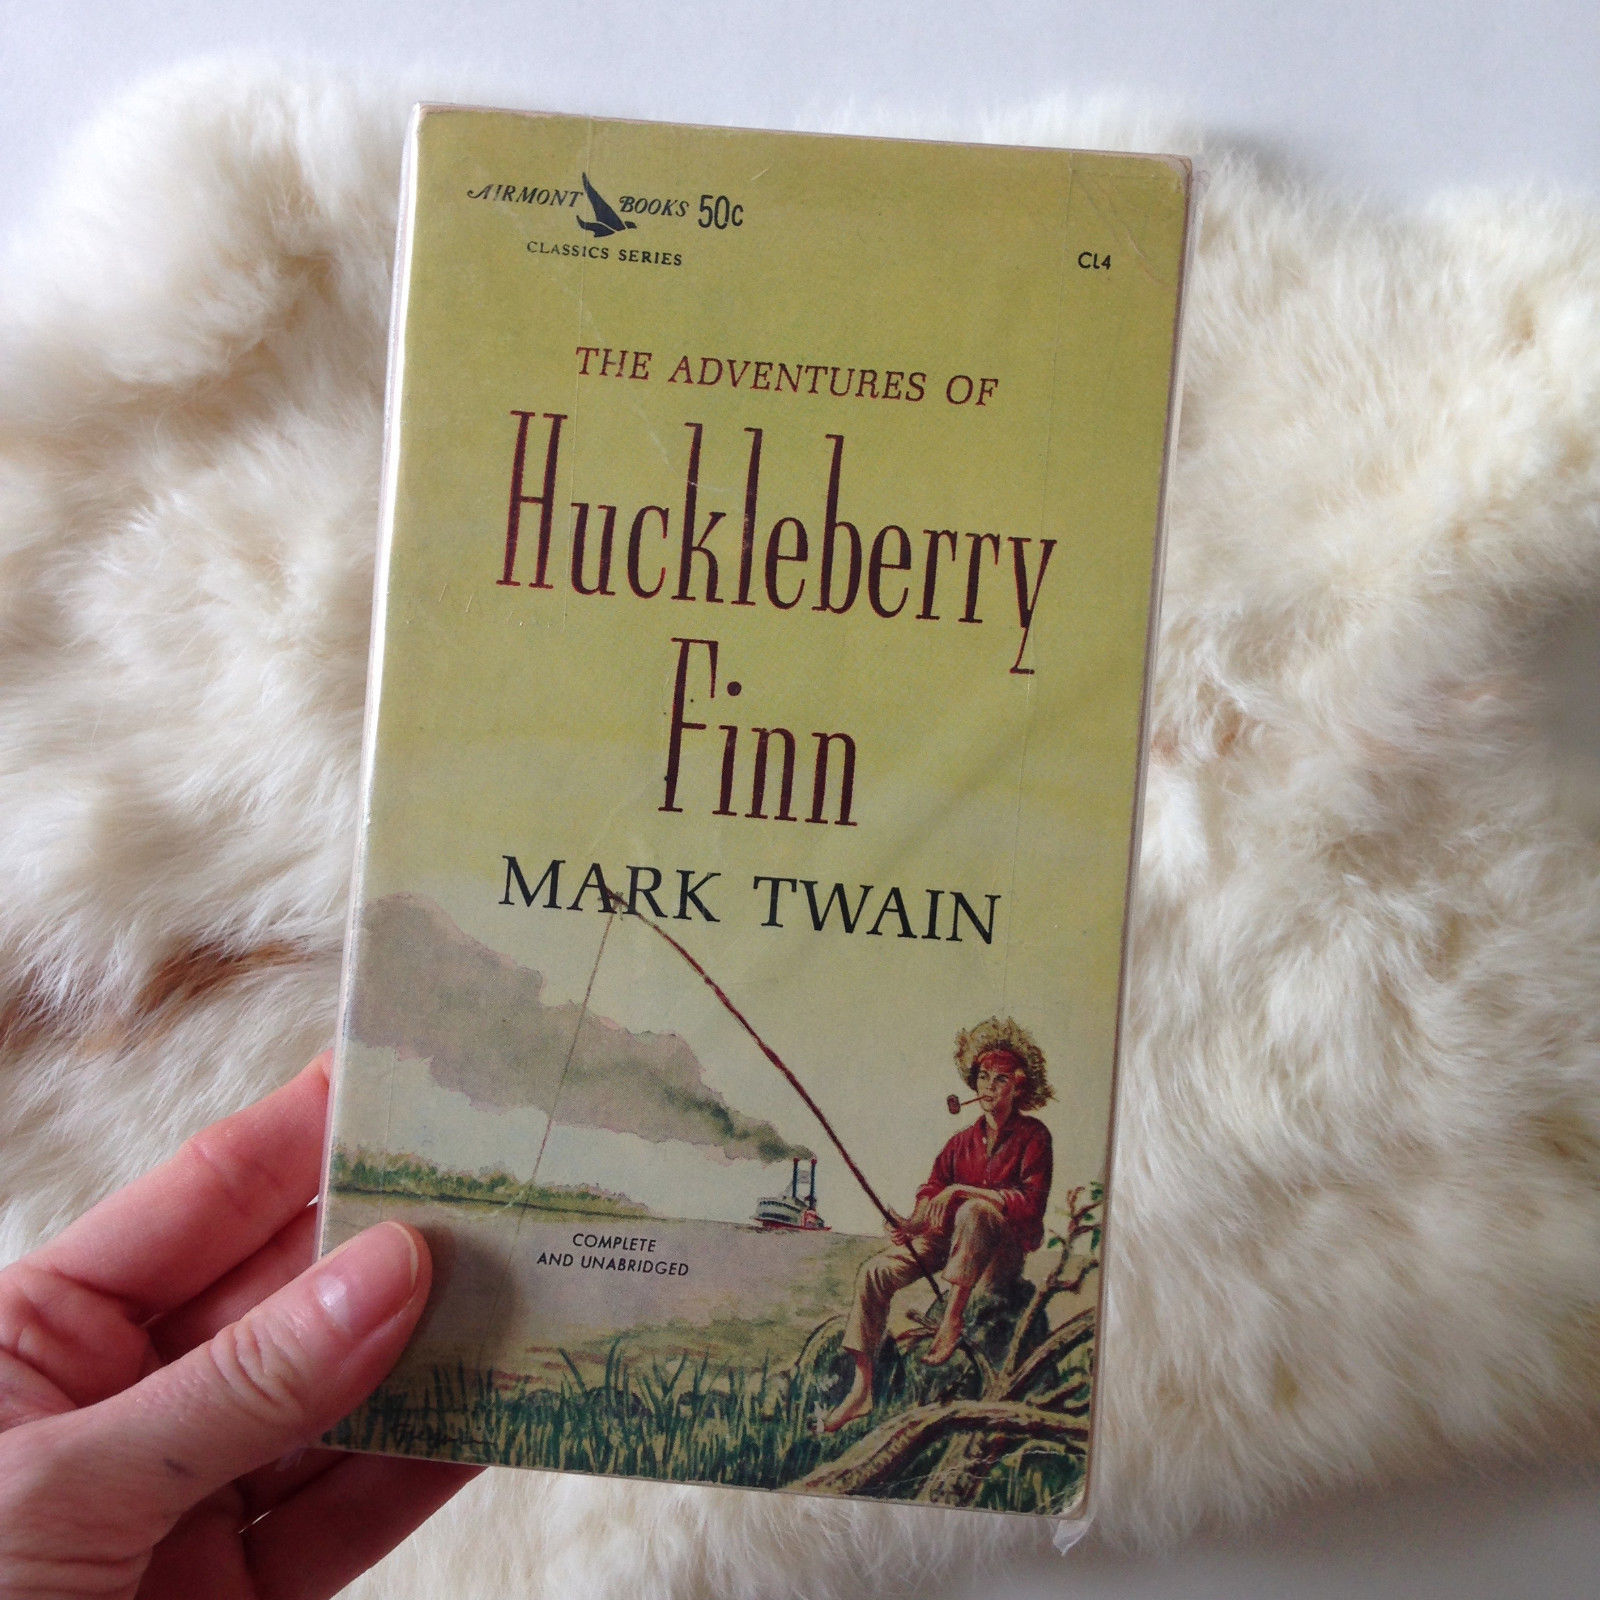 hucks dilemmas from mark twains huckelberry finn Start studying english huckleberry finn and mark twain test learn vocabulary, terms, and more with flashcards, games, and other study tools.